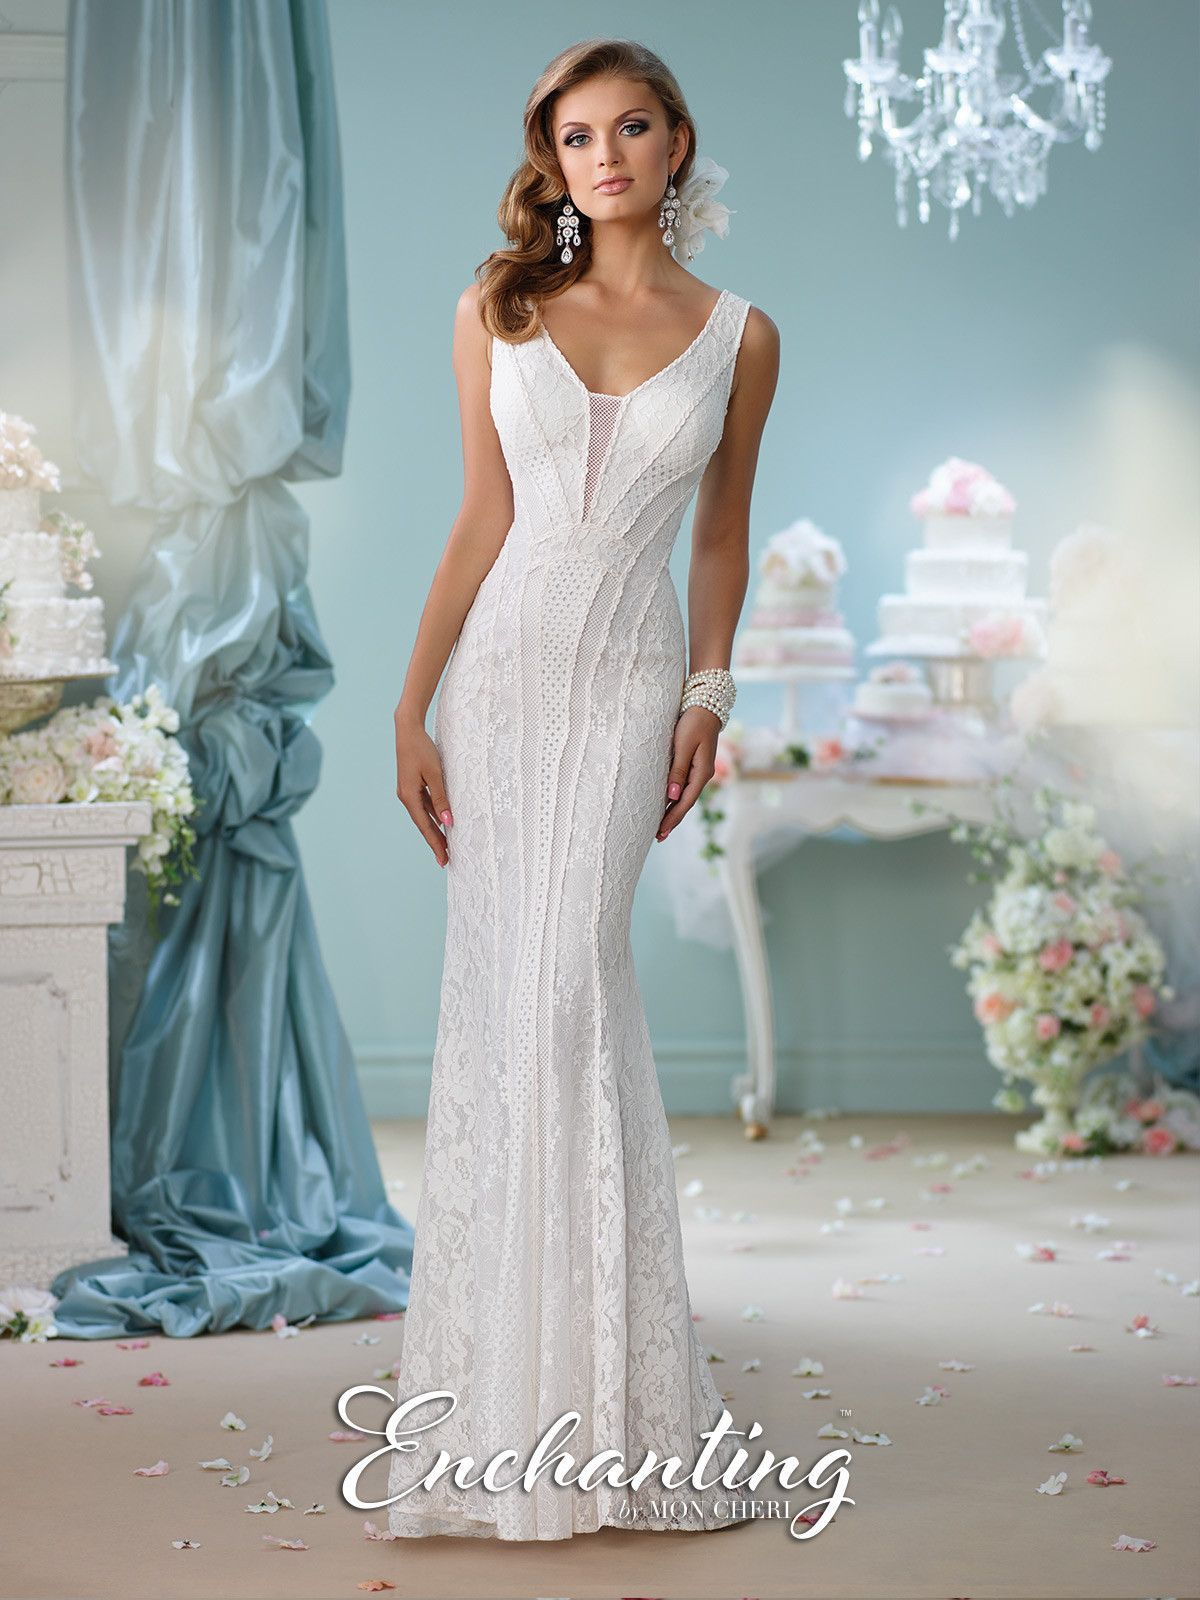 Enchanting all dressed up bridal gown enchanted